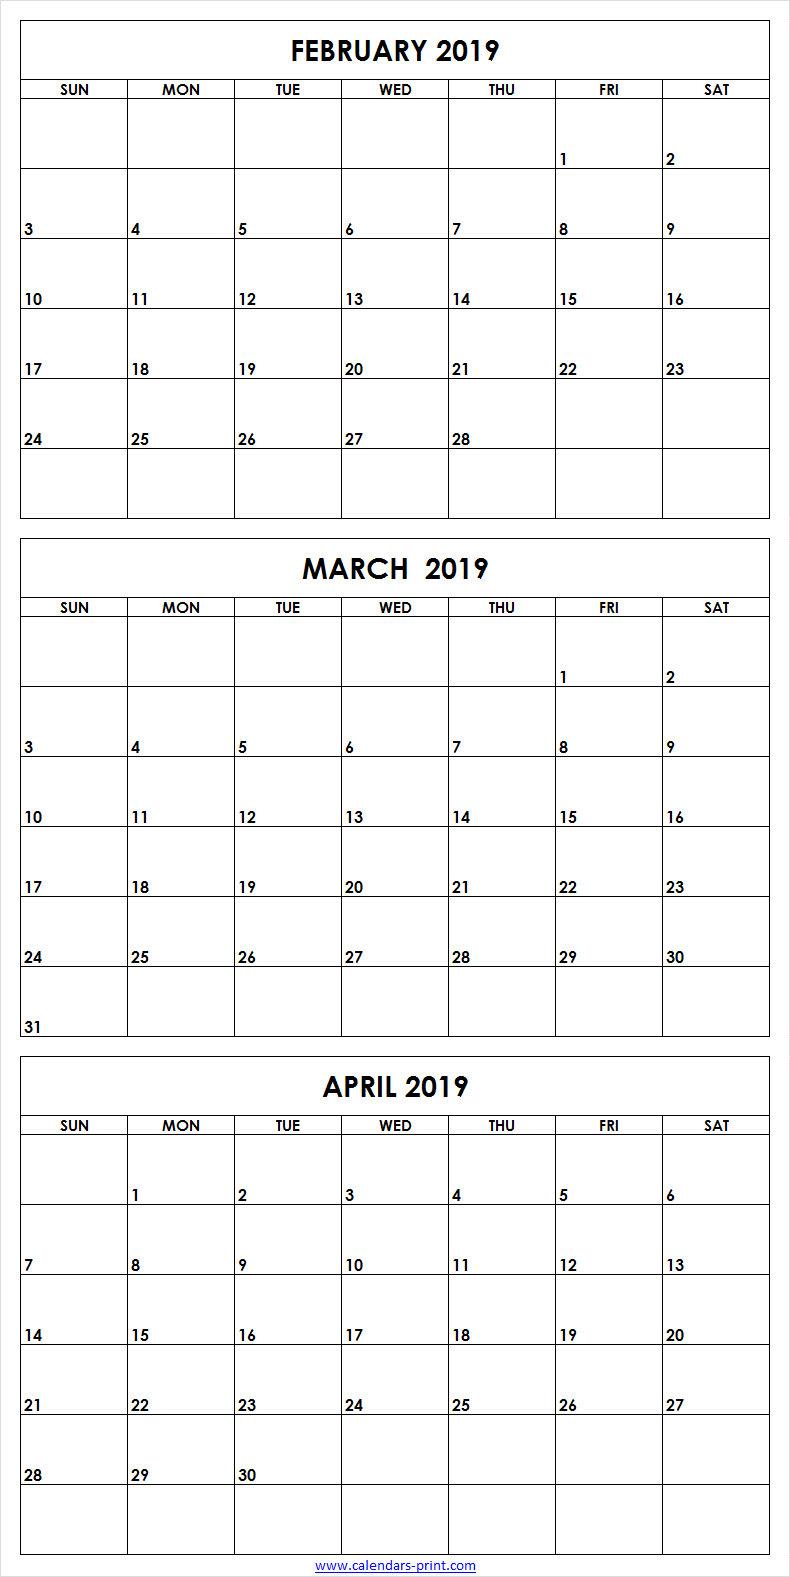 3 Month February To April 2019 Calendar Template | February 2019 3 Month Calendar 2019